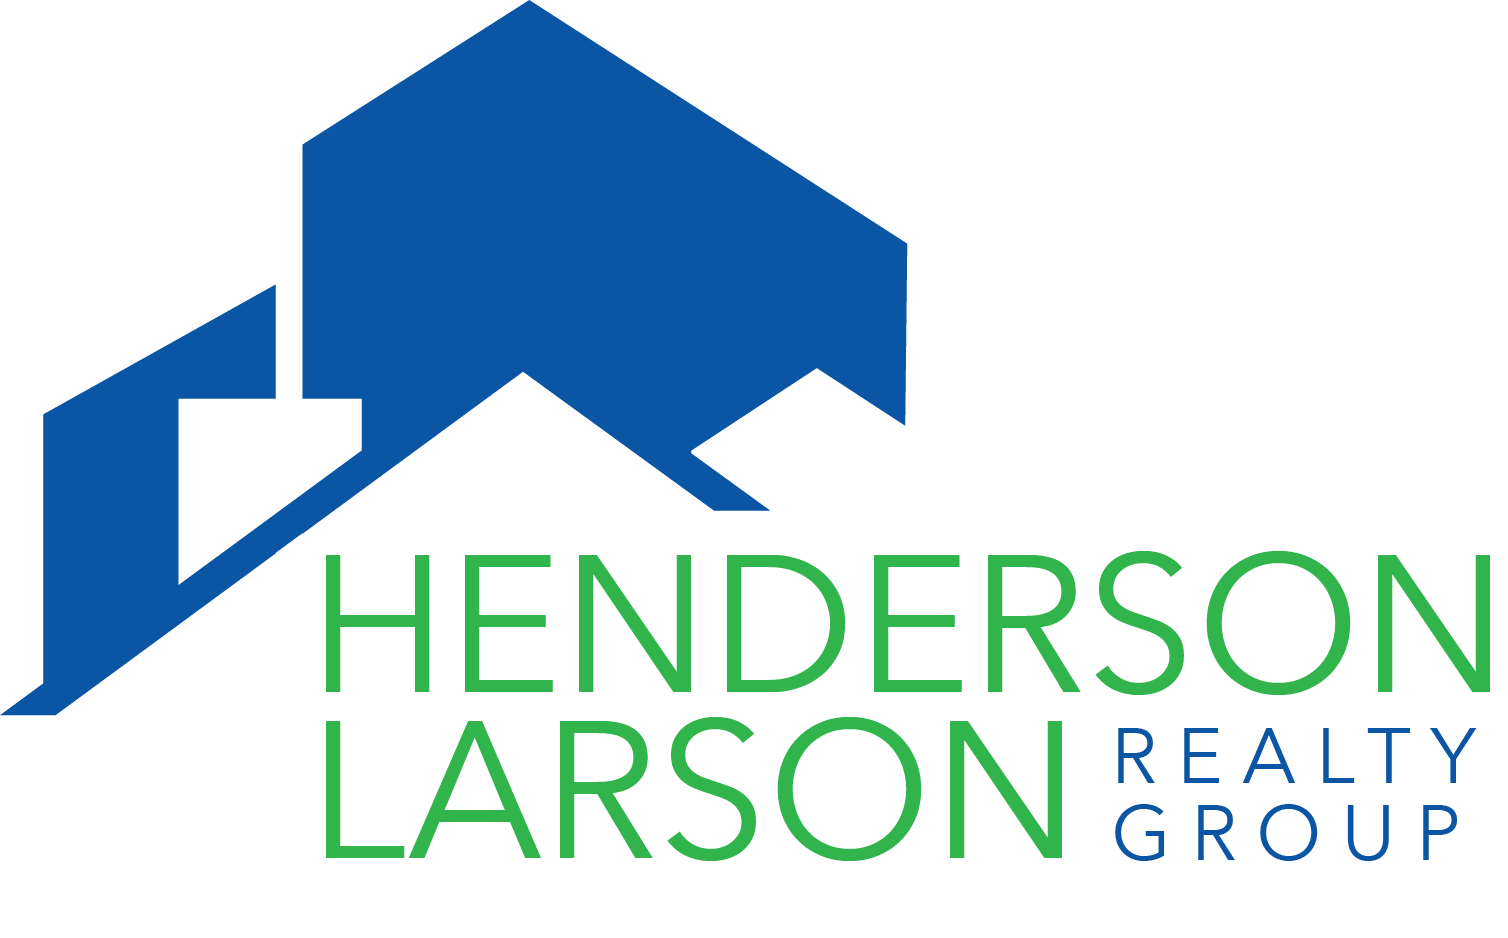 Henderson Larson Realty Group